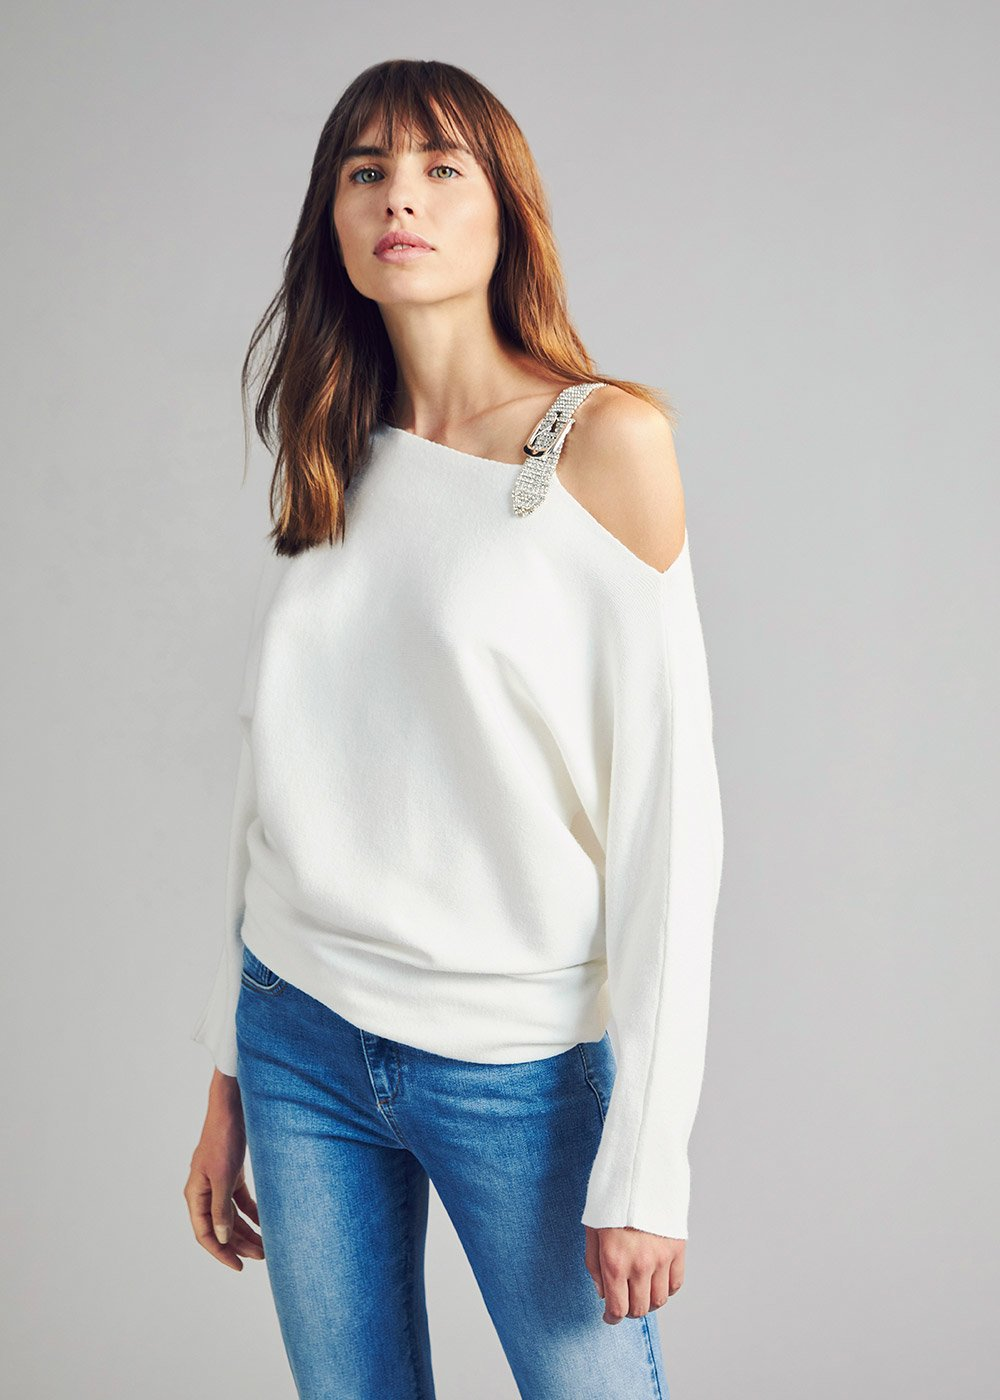 Asymmetric sweater with rhinestone buckle on the shoulder - White - Woman